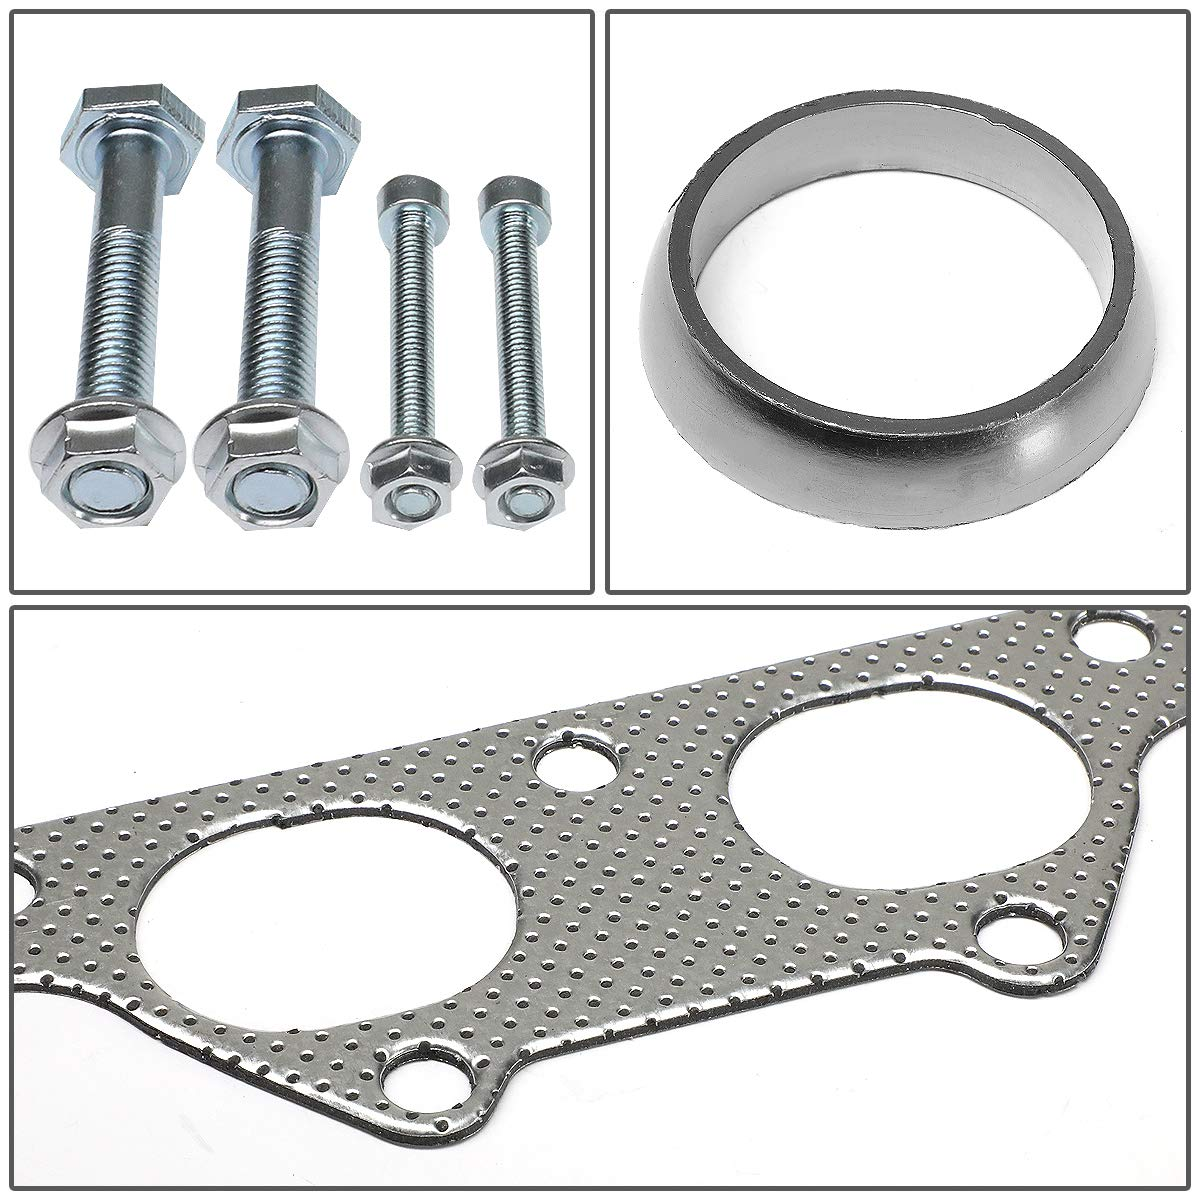 DNA Motoring GKTSET-HC88-B18-41 Aluminum Exhaust Manifold Header Gasket Set Replacement